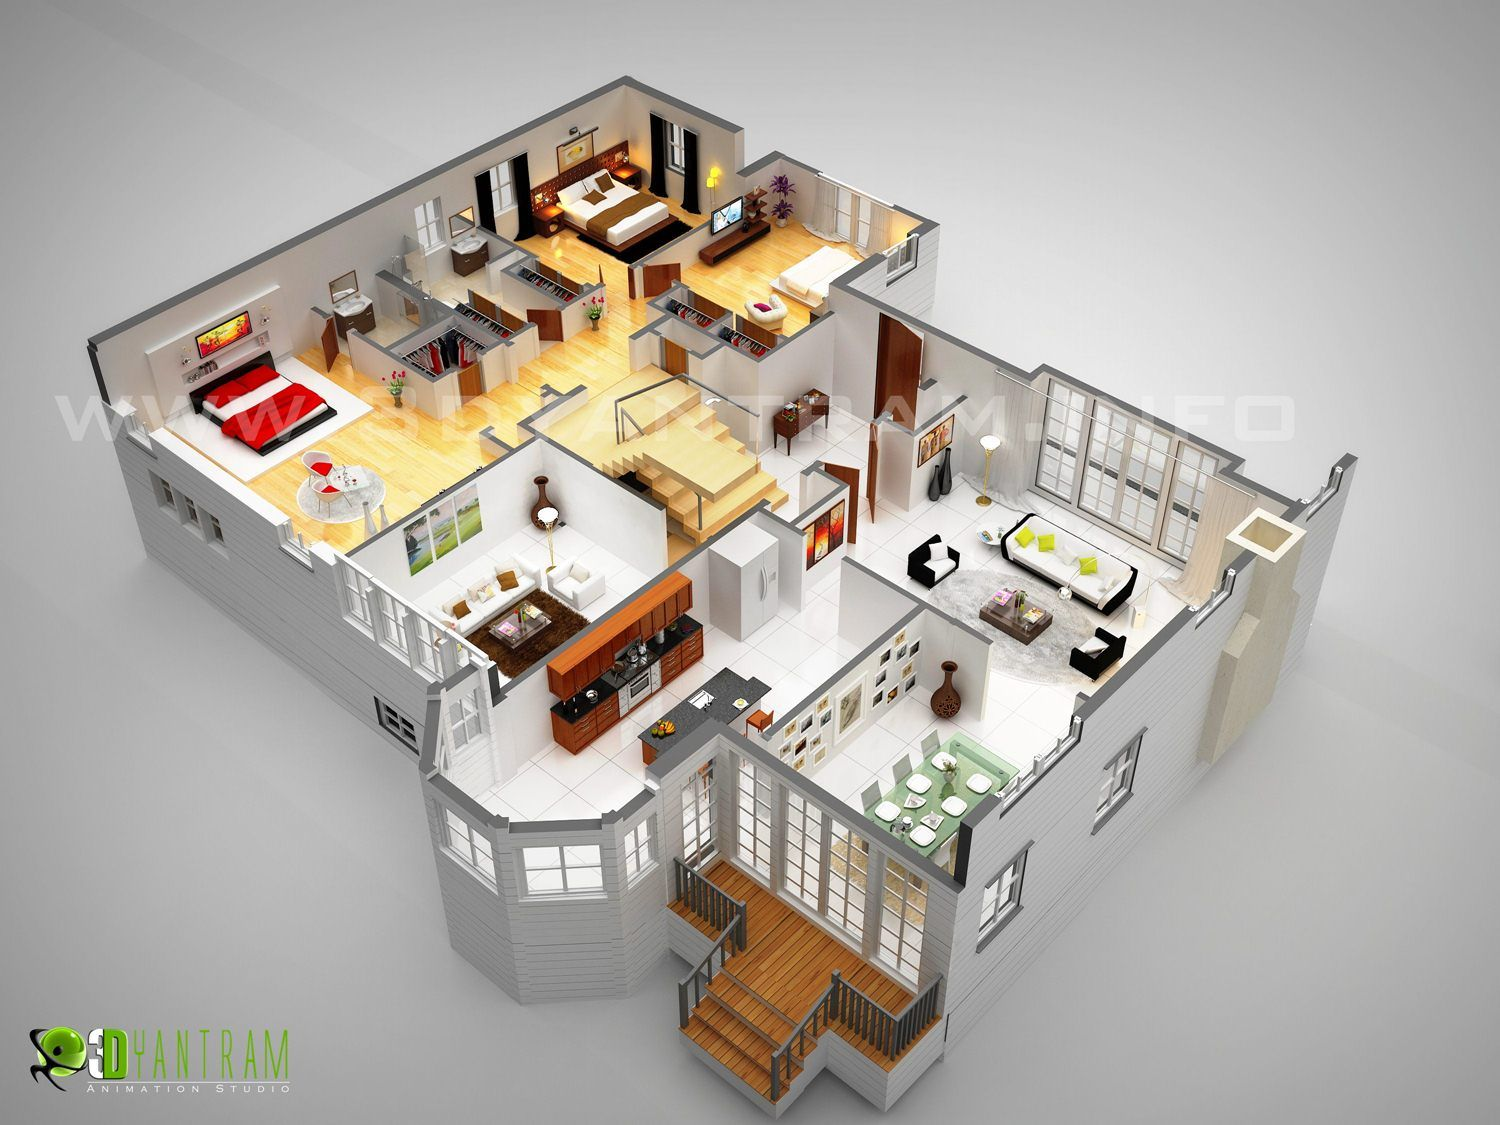 Laxurious residential 3d floor plan paris sims for Floorplans 3d